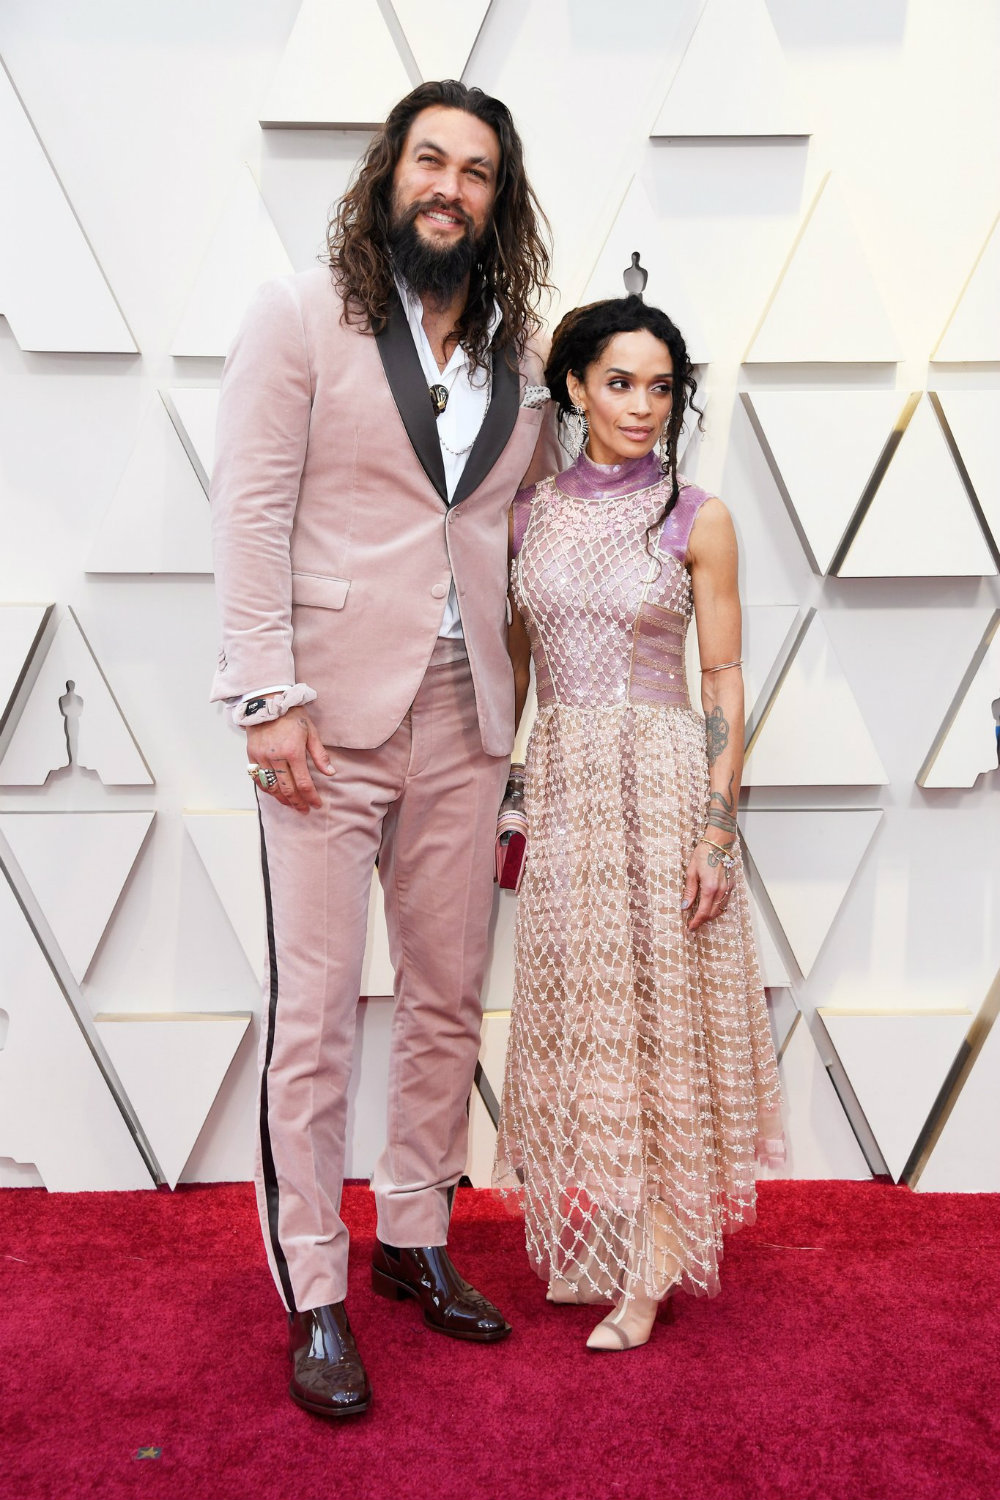 Oscars 2019 Red Carpet The Best Fashion 04 oscars 2019 red carpet Oscars 2019 Red Carpet : The Best Fashion Oscars 2019 Red Carpet The Best Fashion 04